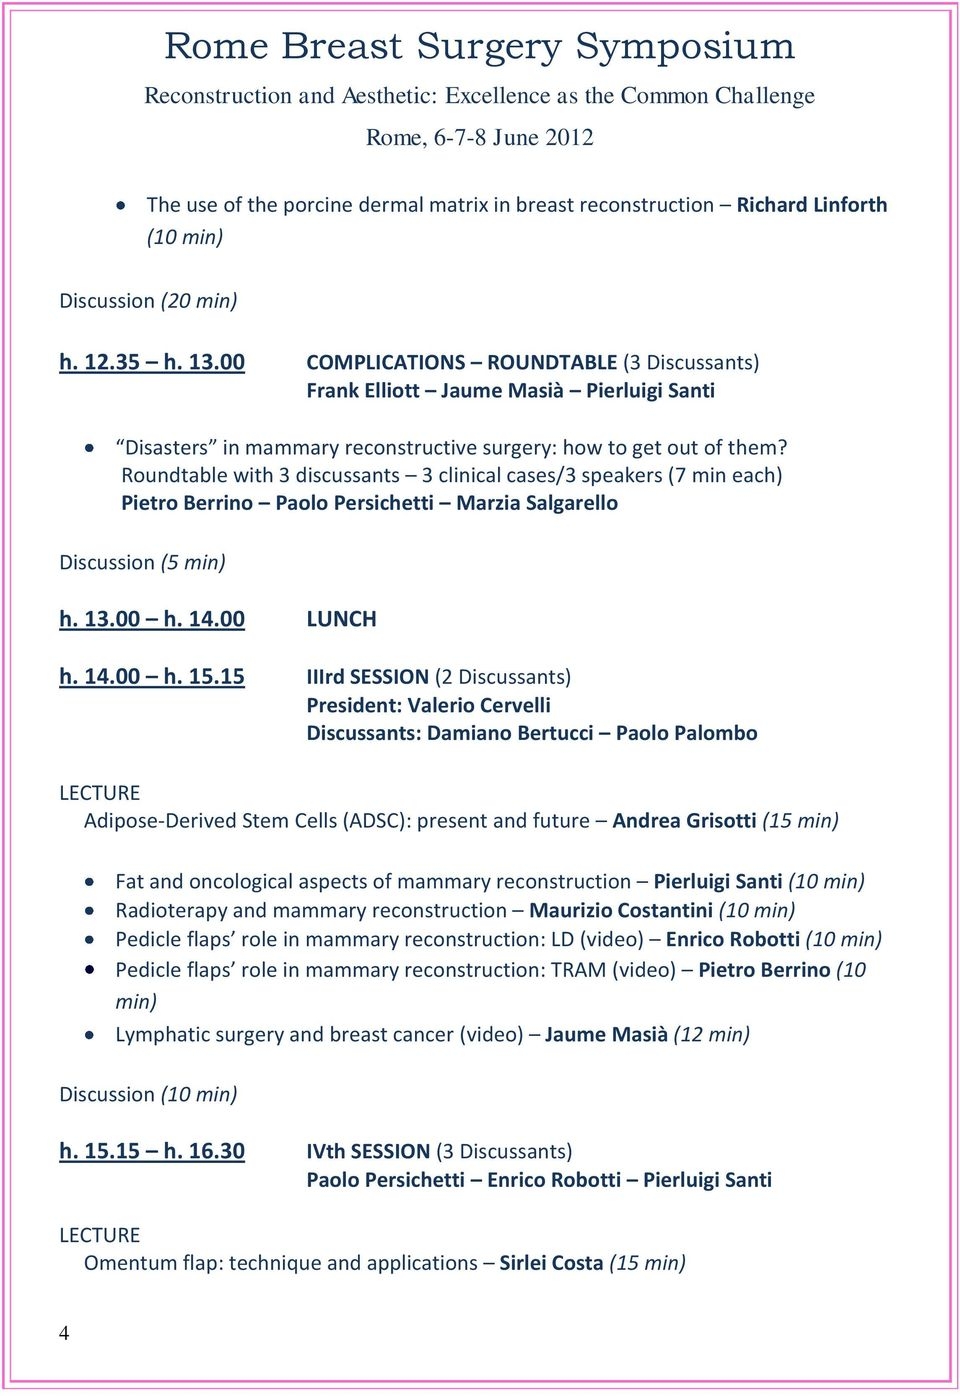 Roundtable with 3 discussants 3 clinical cases/3 speakers (7 min each) Pietro Berrino Paolo Persichetti Marzia Salgarello Discussion (5 min) h. 13.00 h. 14.00 LUNCH h. 14.00 h. 15.